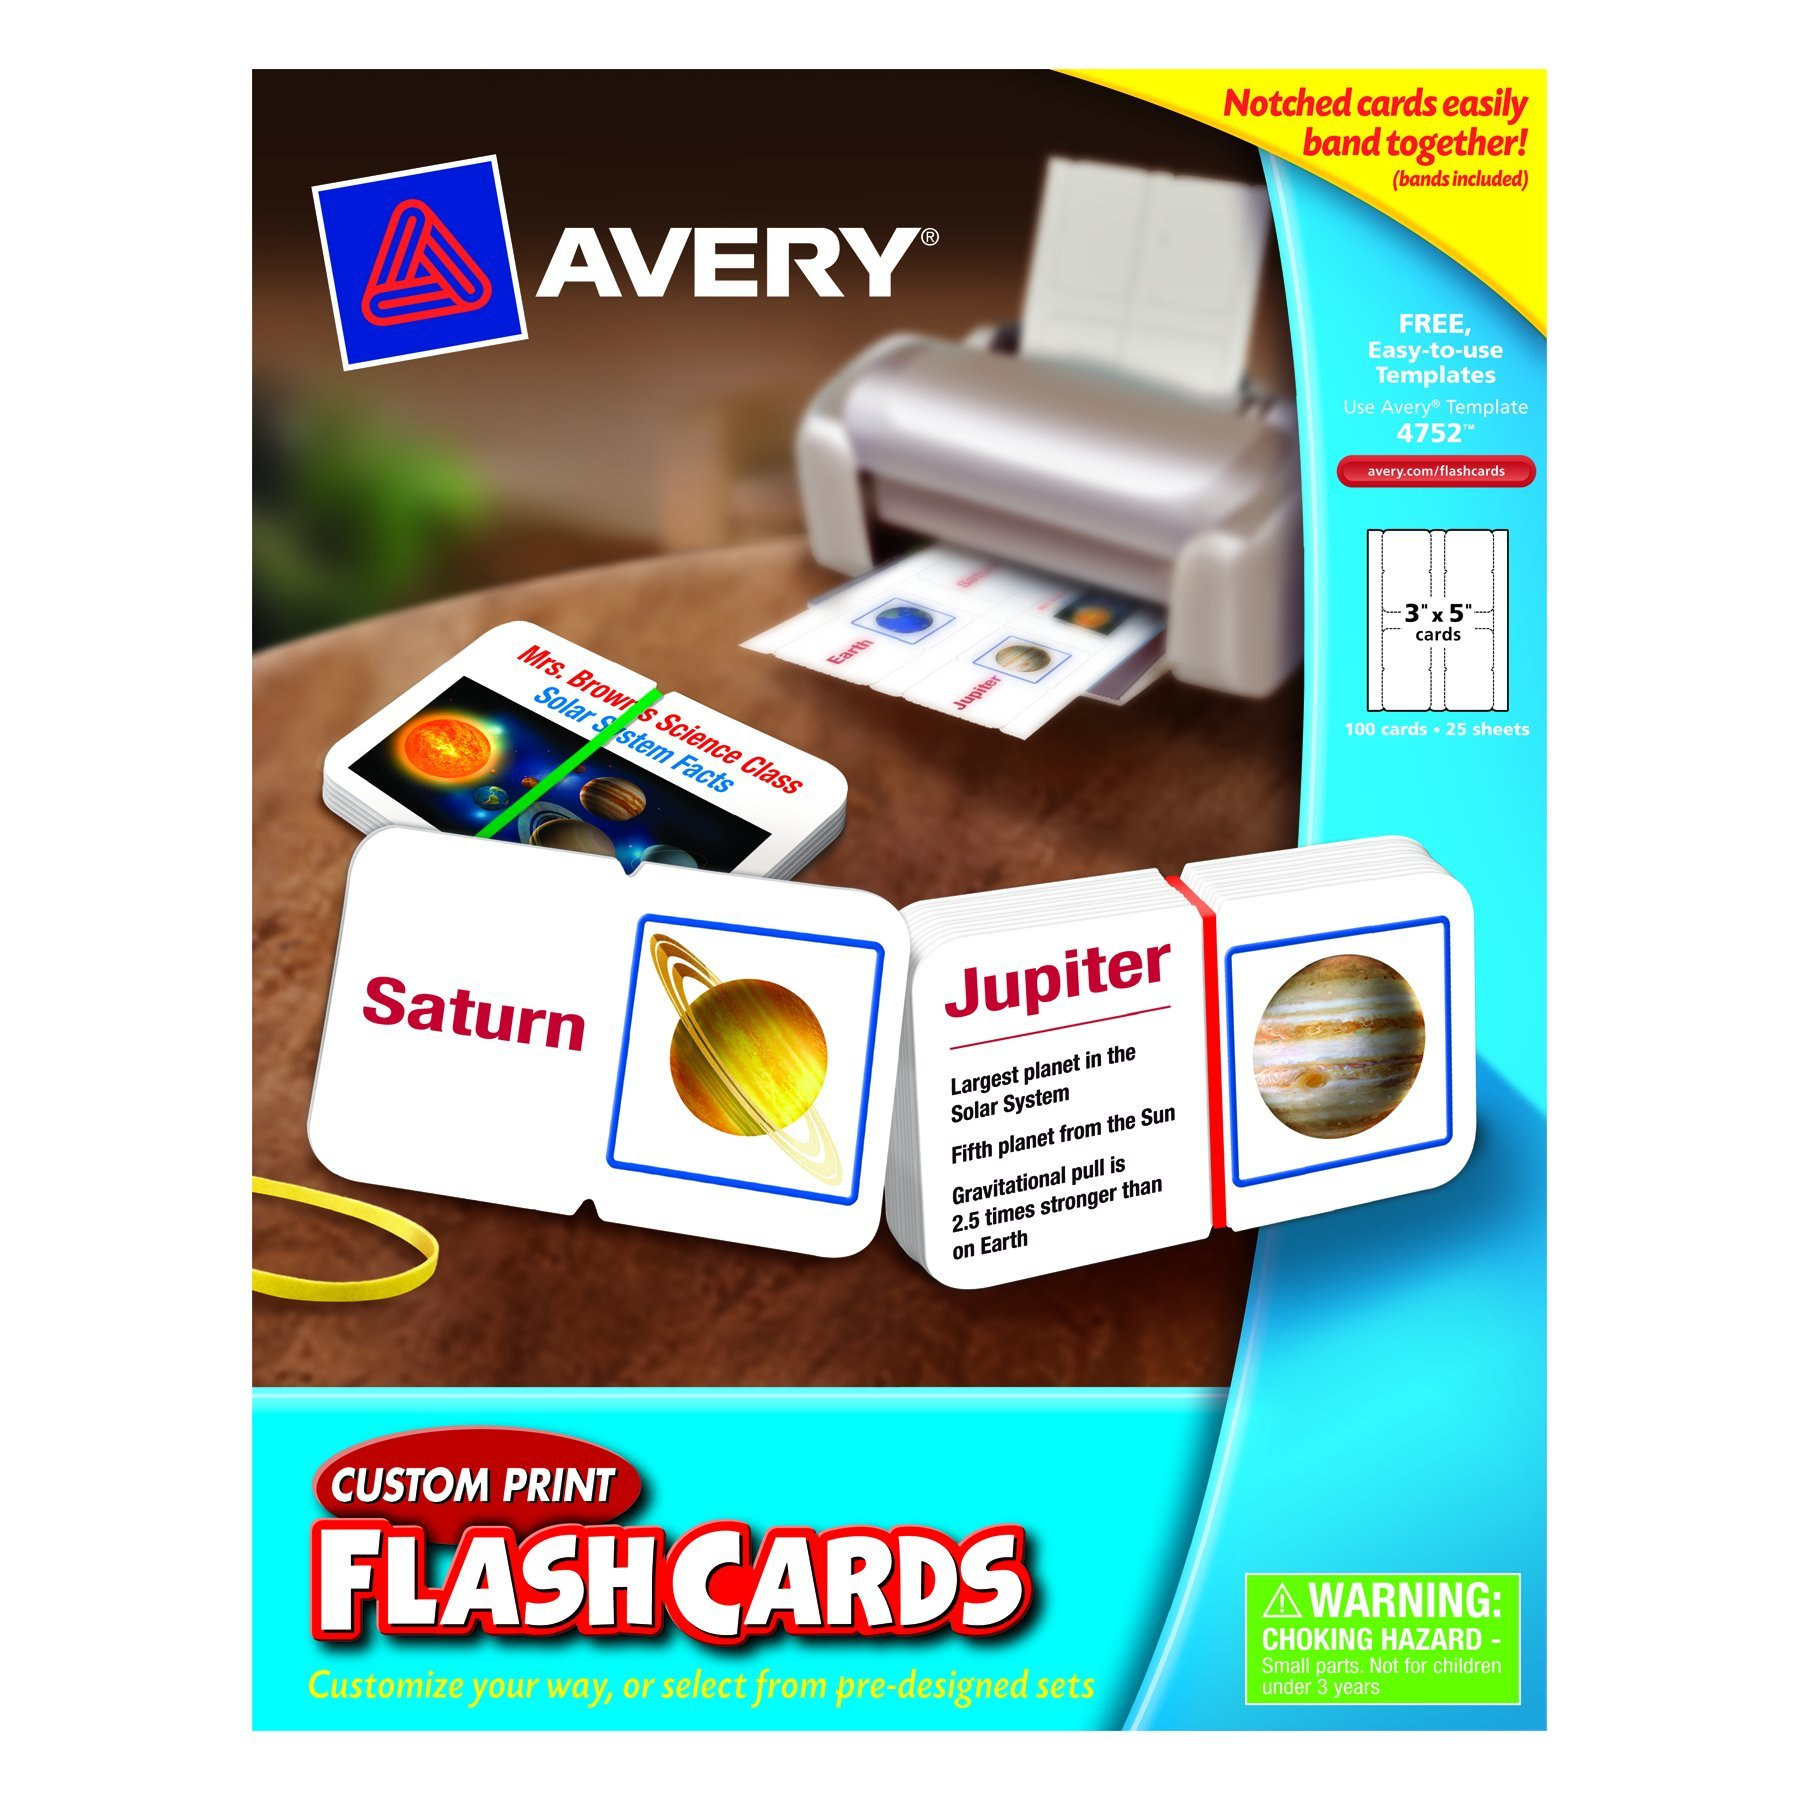 Avery AVE04752 Flash Cards Custom Print by Avery (Image #1)